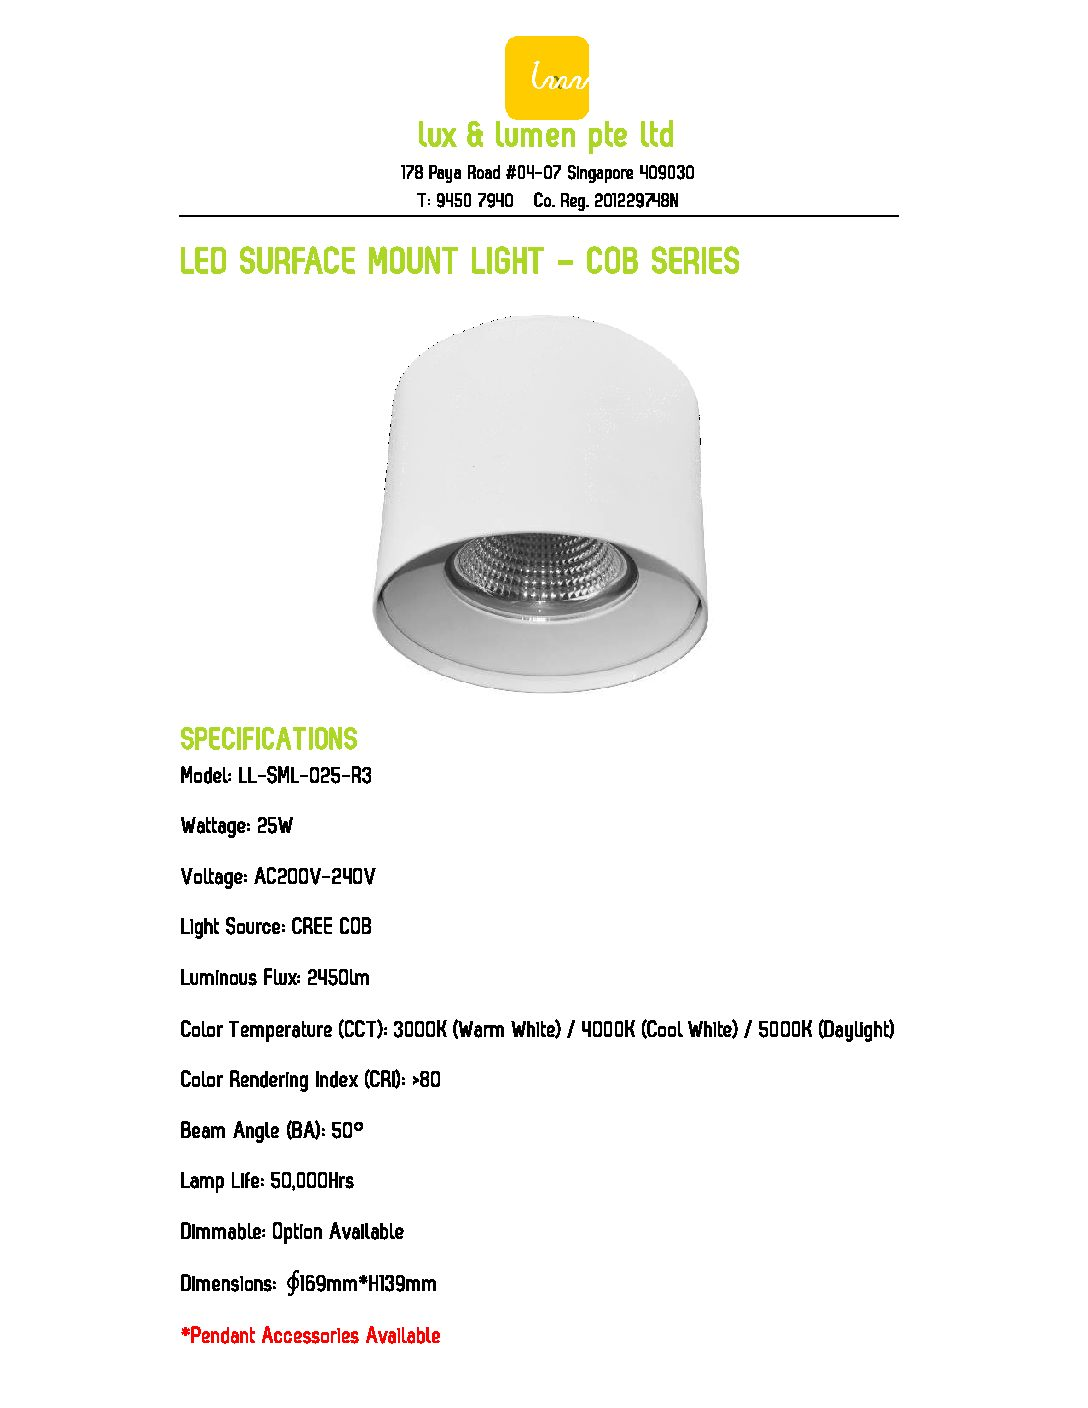 LED Surface Mount Light COB Series R025